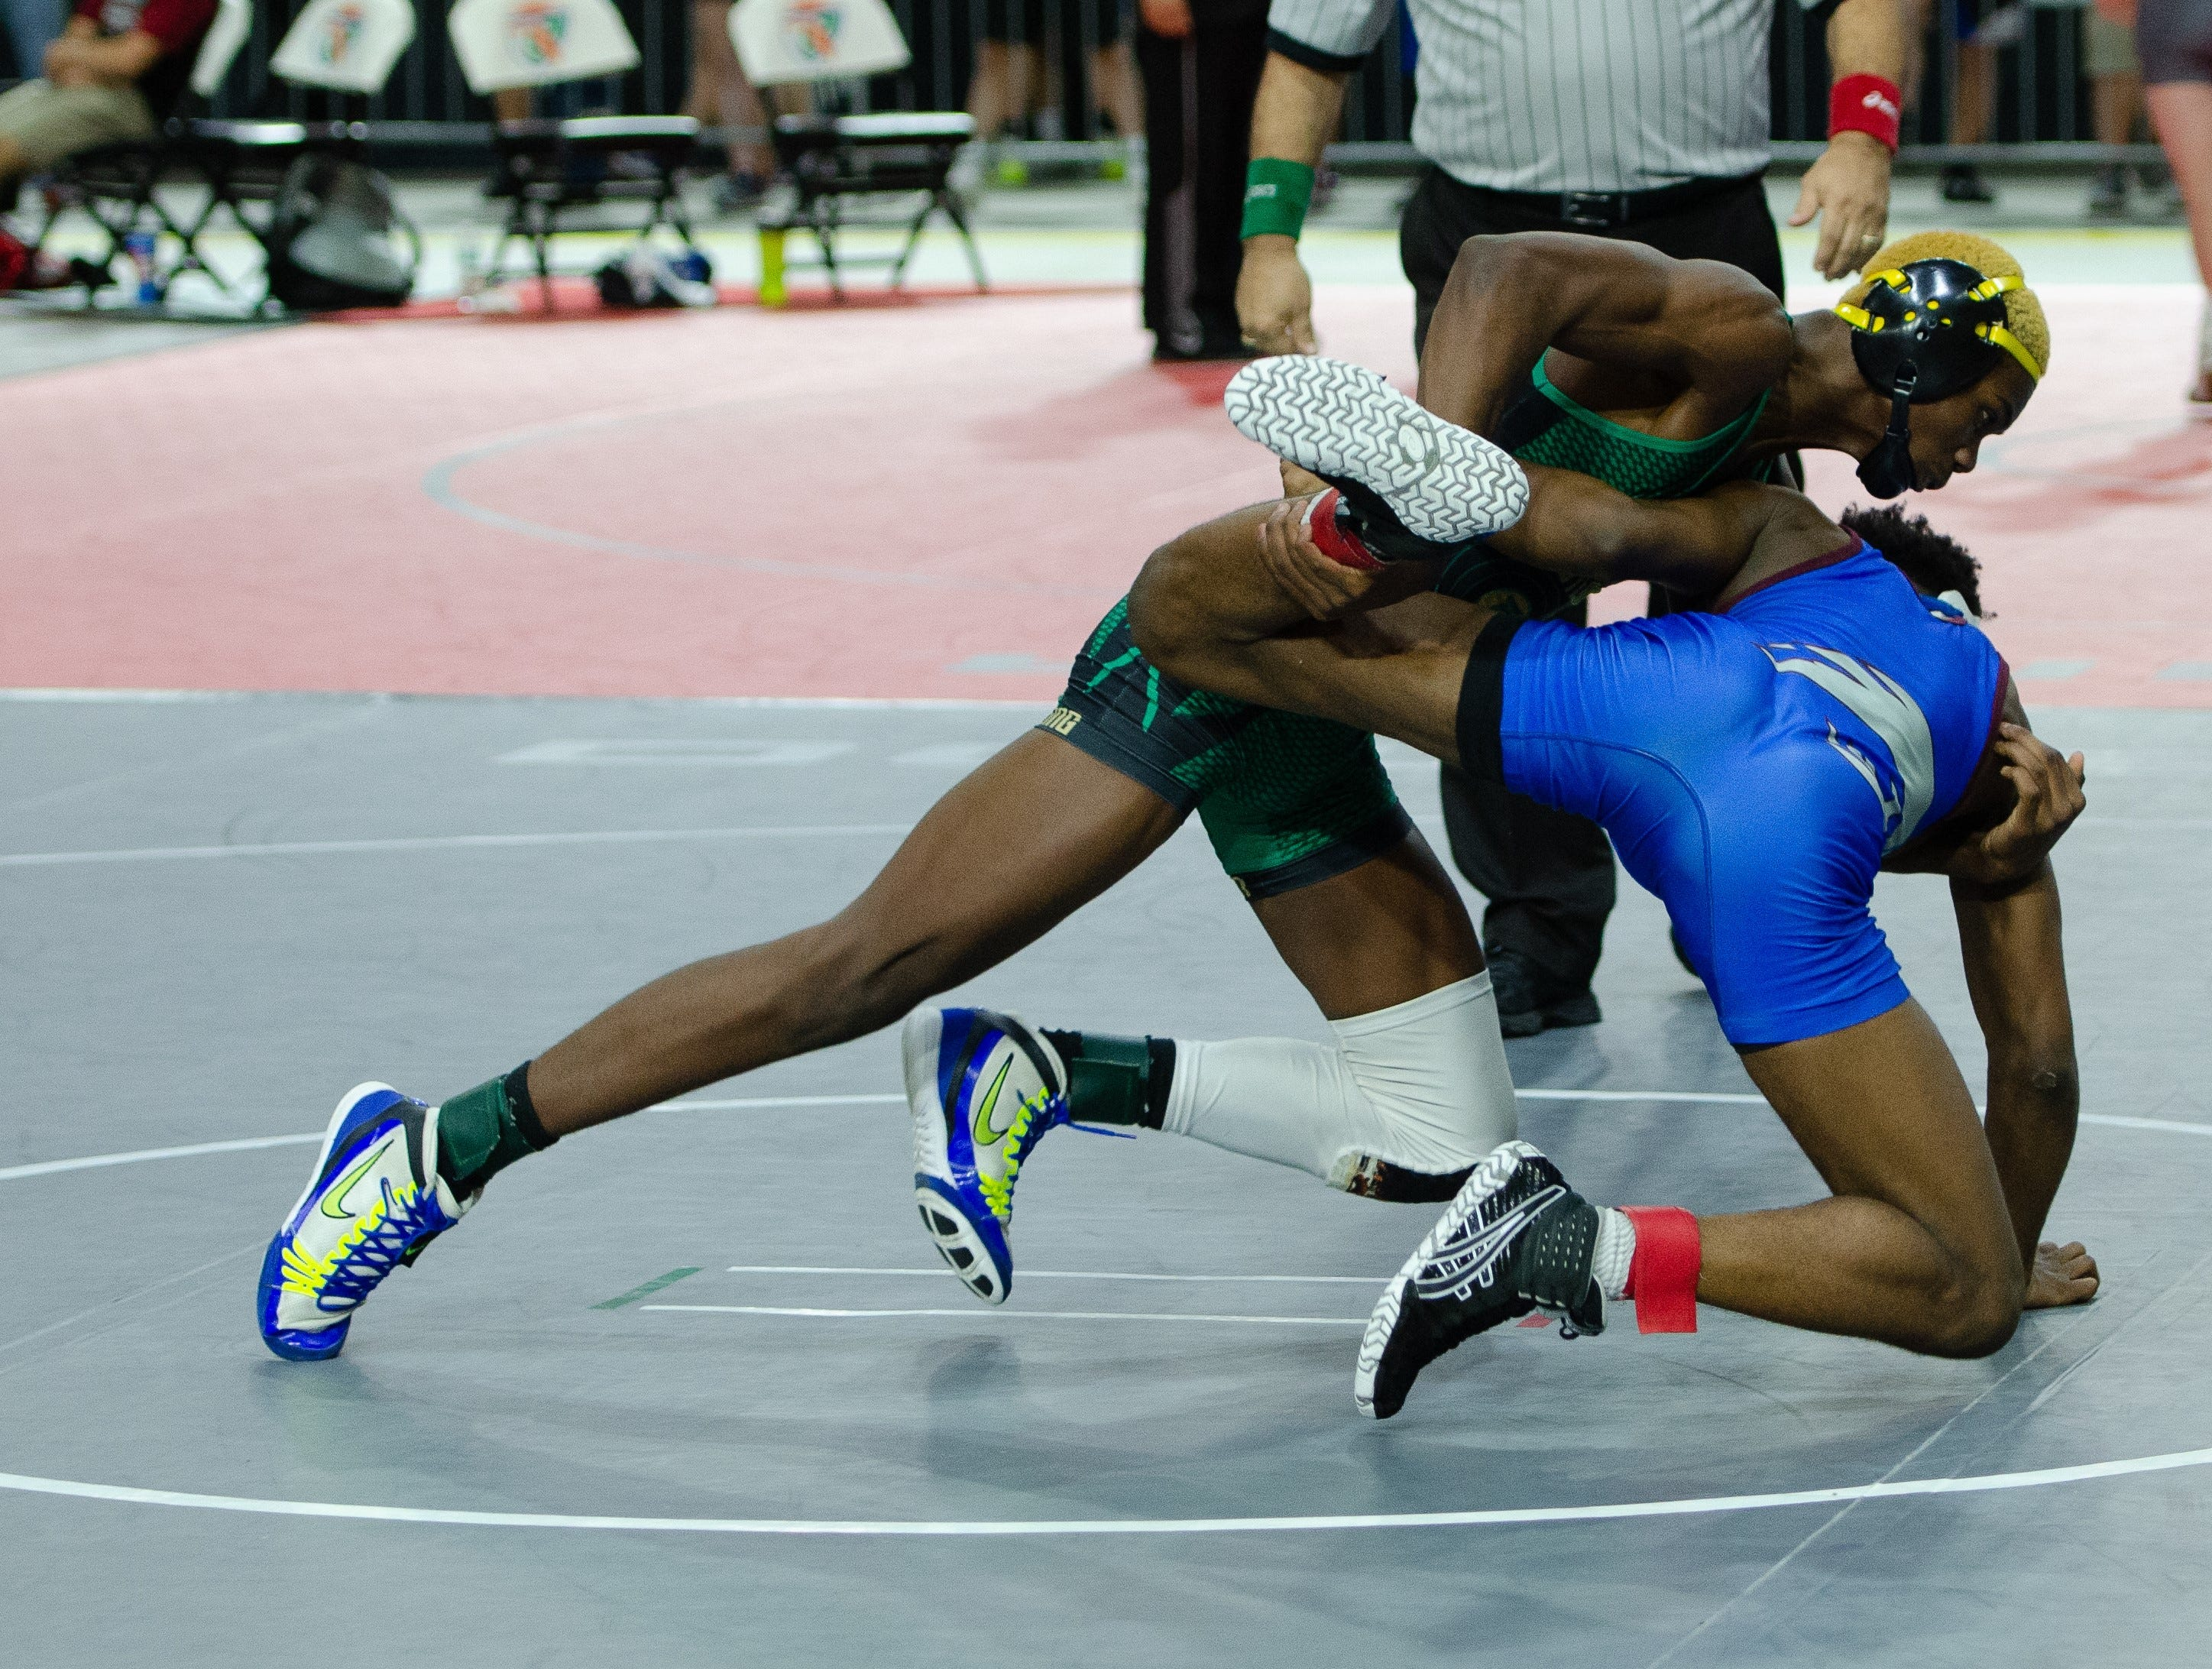 Lincoln's Ikeon Myles wrestles at the FHSAA Wrestling State Championships inside Silver Spur Arena in Kissimmee.